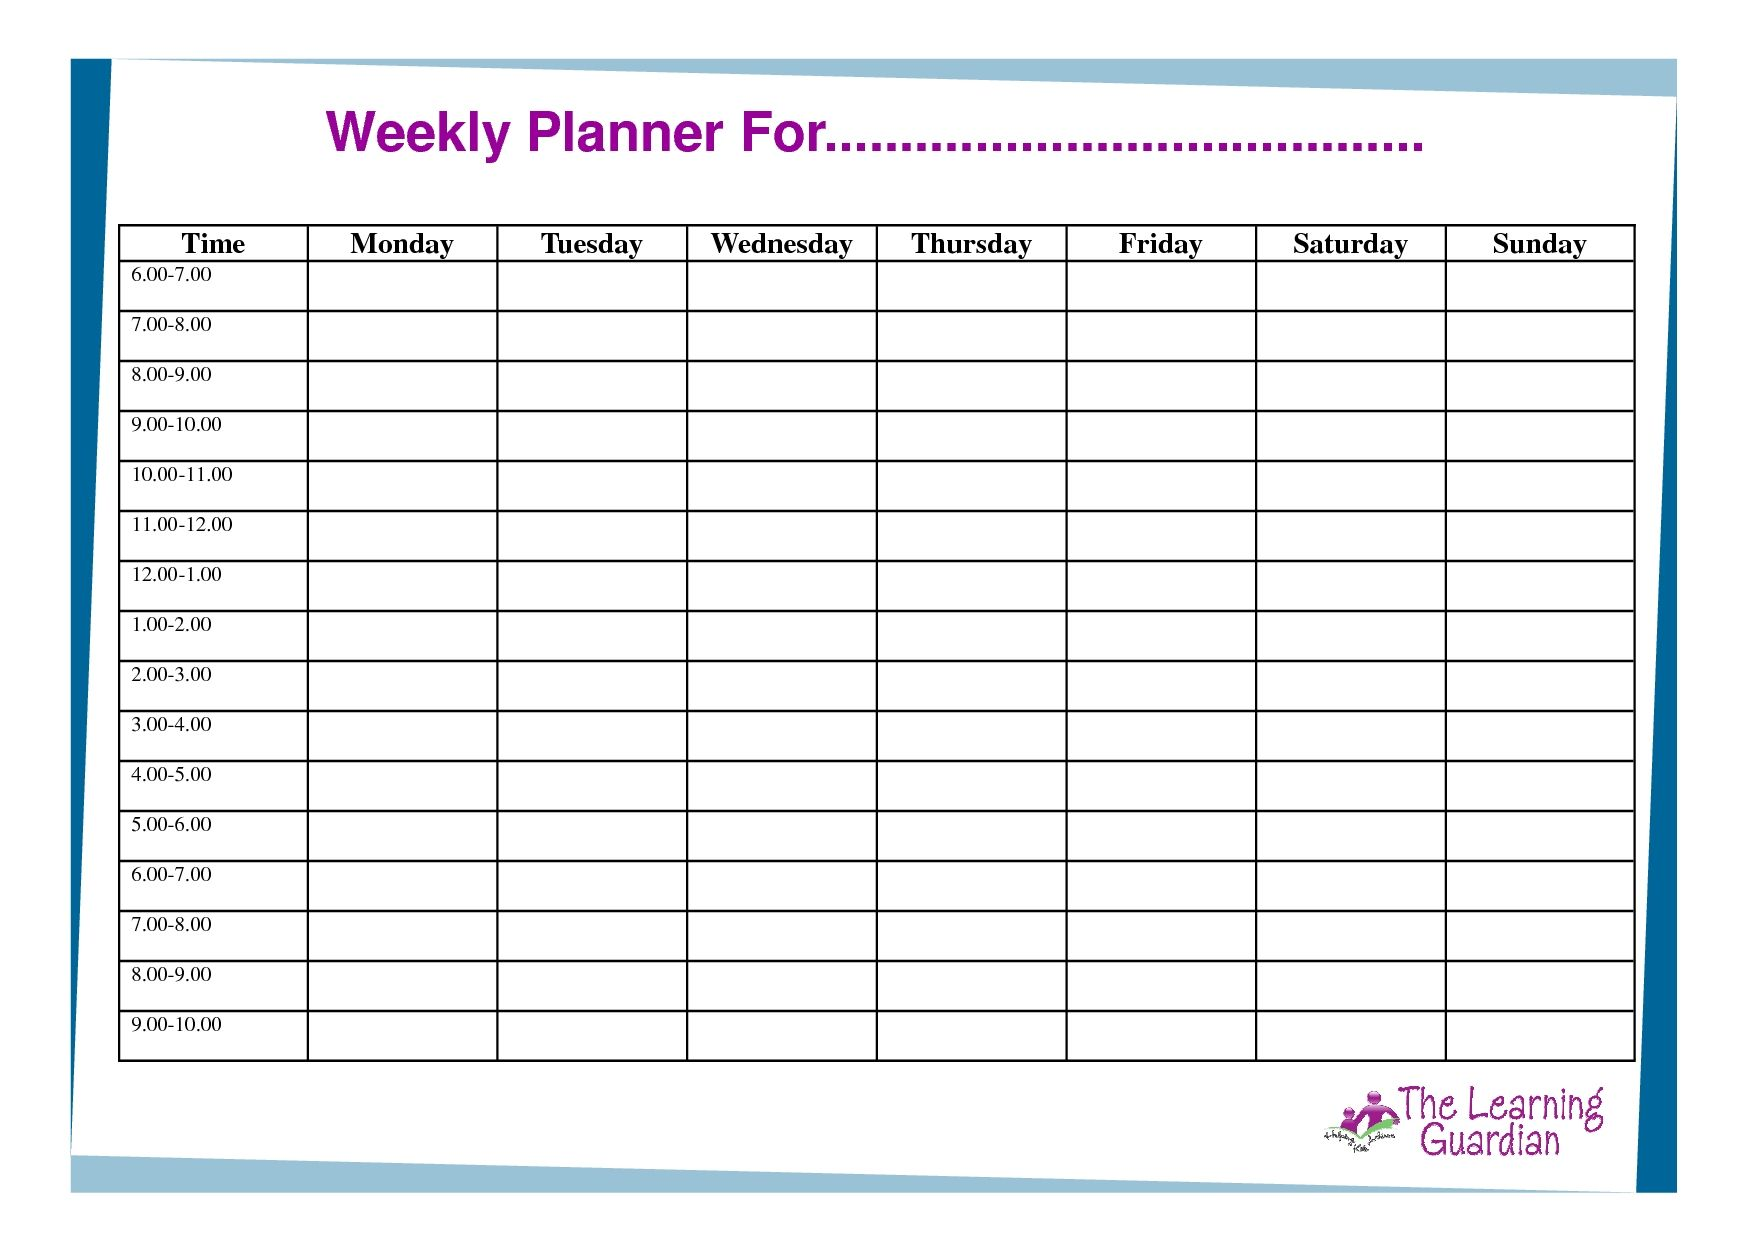 Free Printable Weekly Calendar Templates Planner For Time Incredible 7 Day We Weekly Calendar Printable Weekly Calendar Template Free Printable Weekly Calendar One week work schedule template